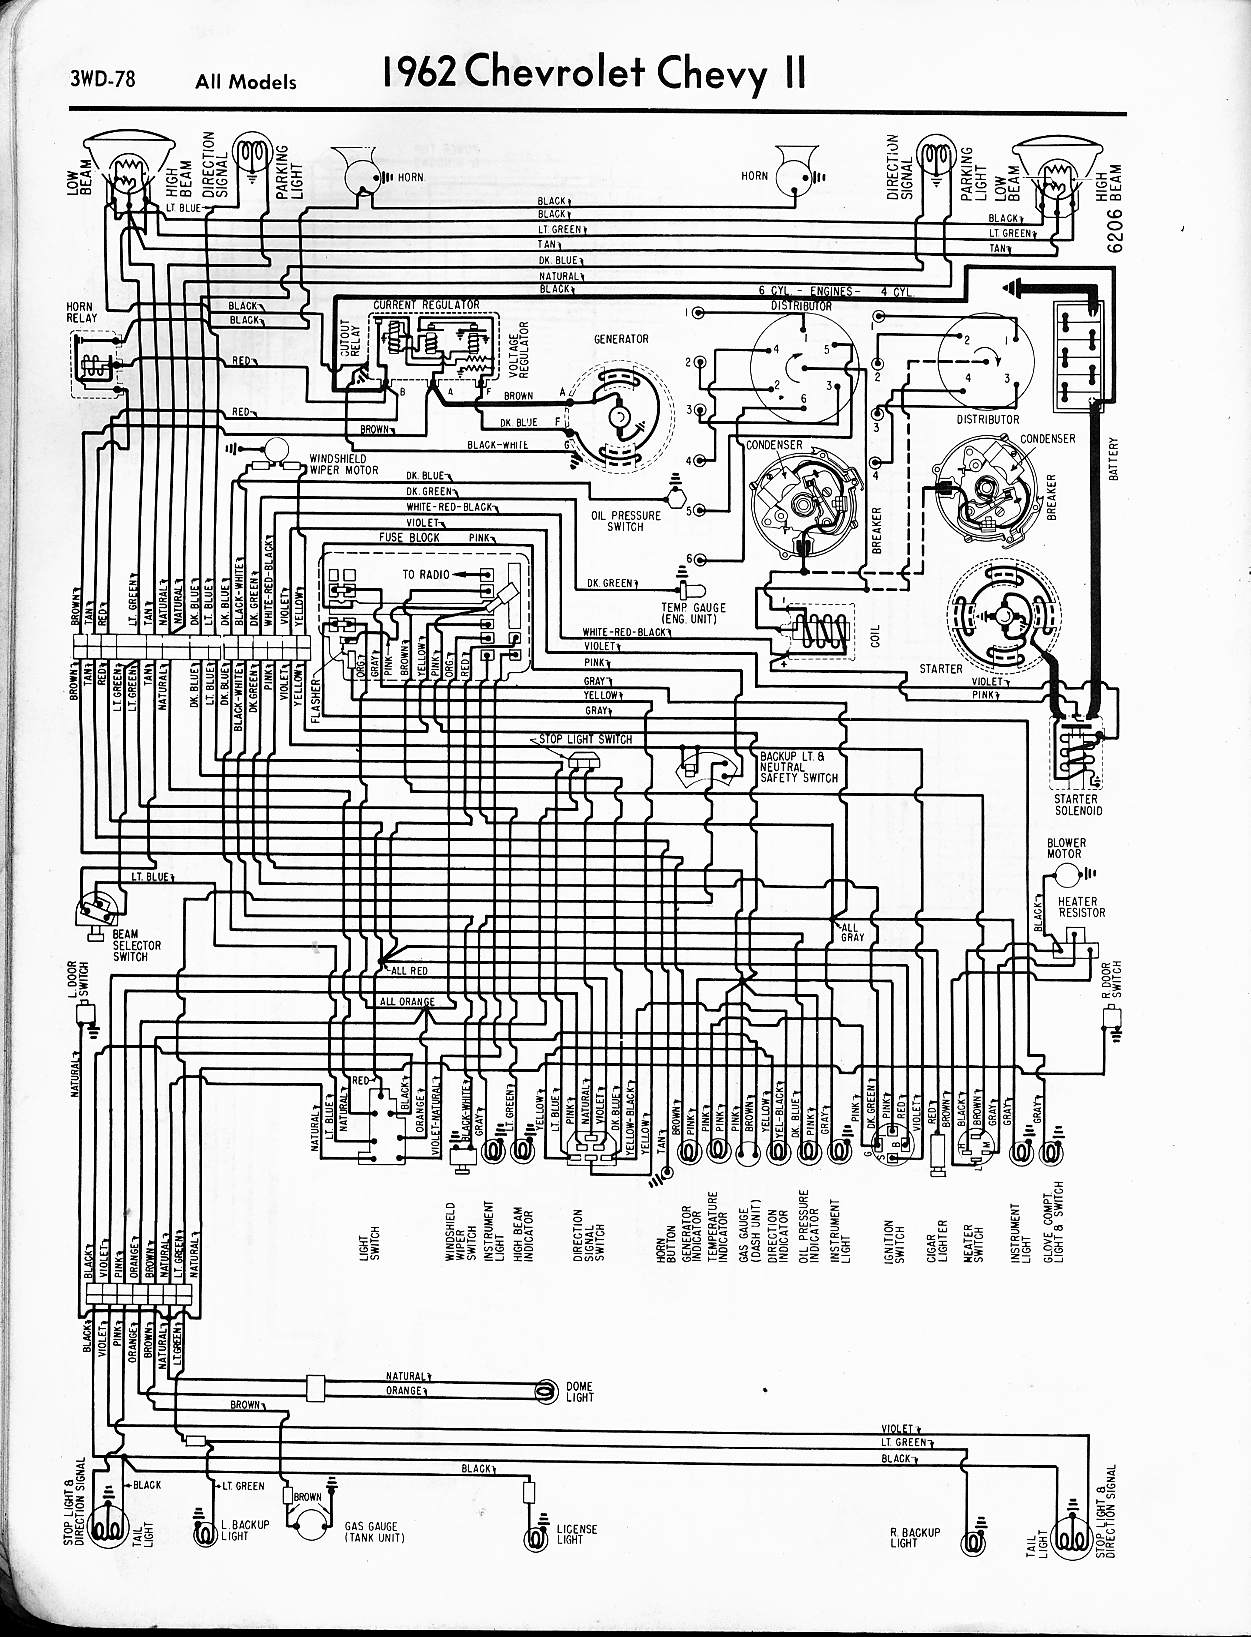 63 Chevy Impala Wiring Diagram Books Of Wiring Diagram \u2022 1968 Chevy  Impala Drag Cars 1968 Chevy Impala Turn Signal Wiring Diagram